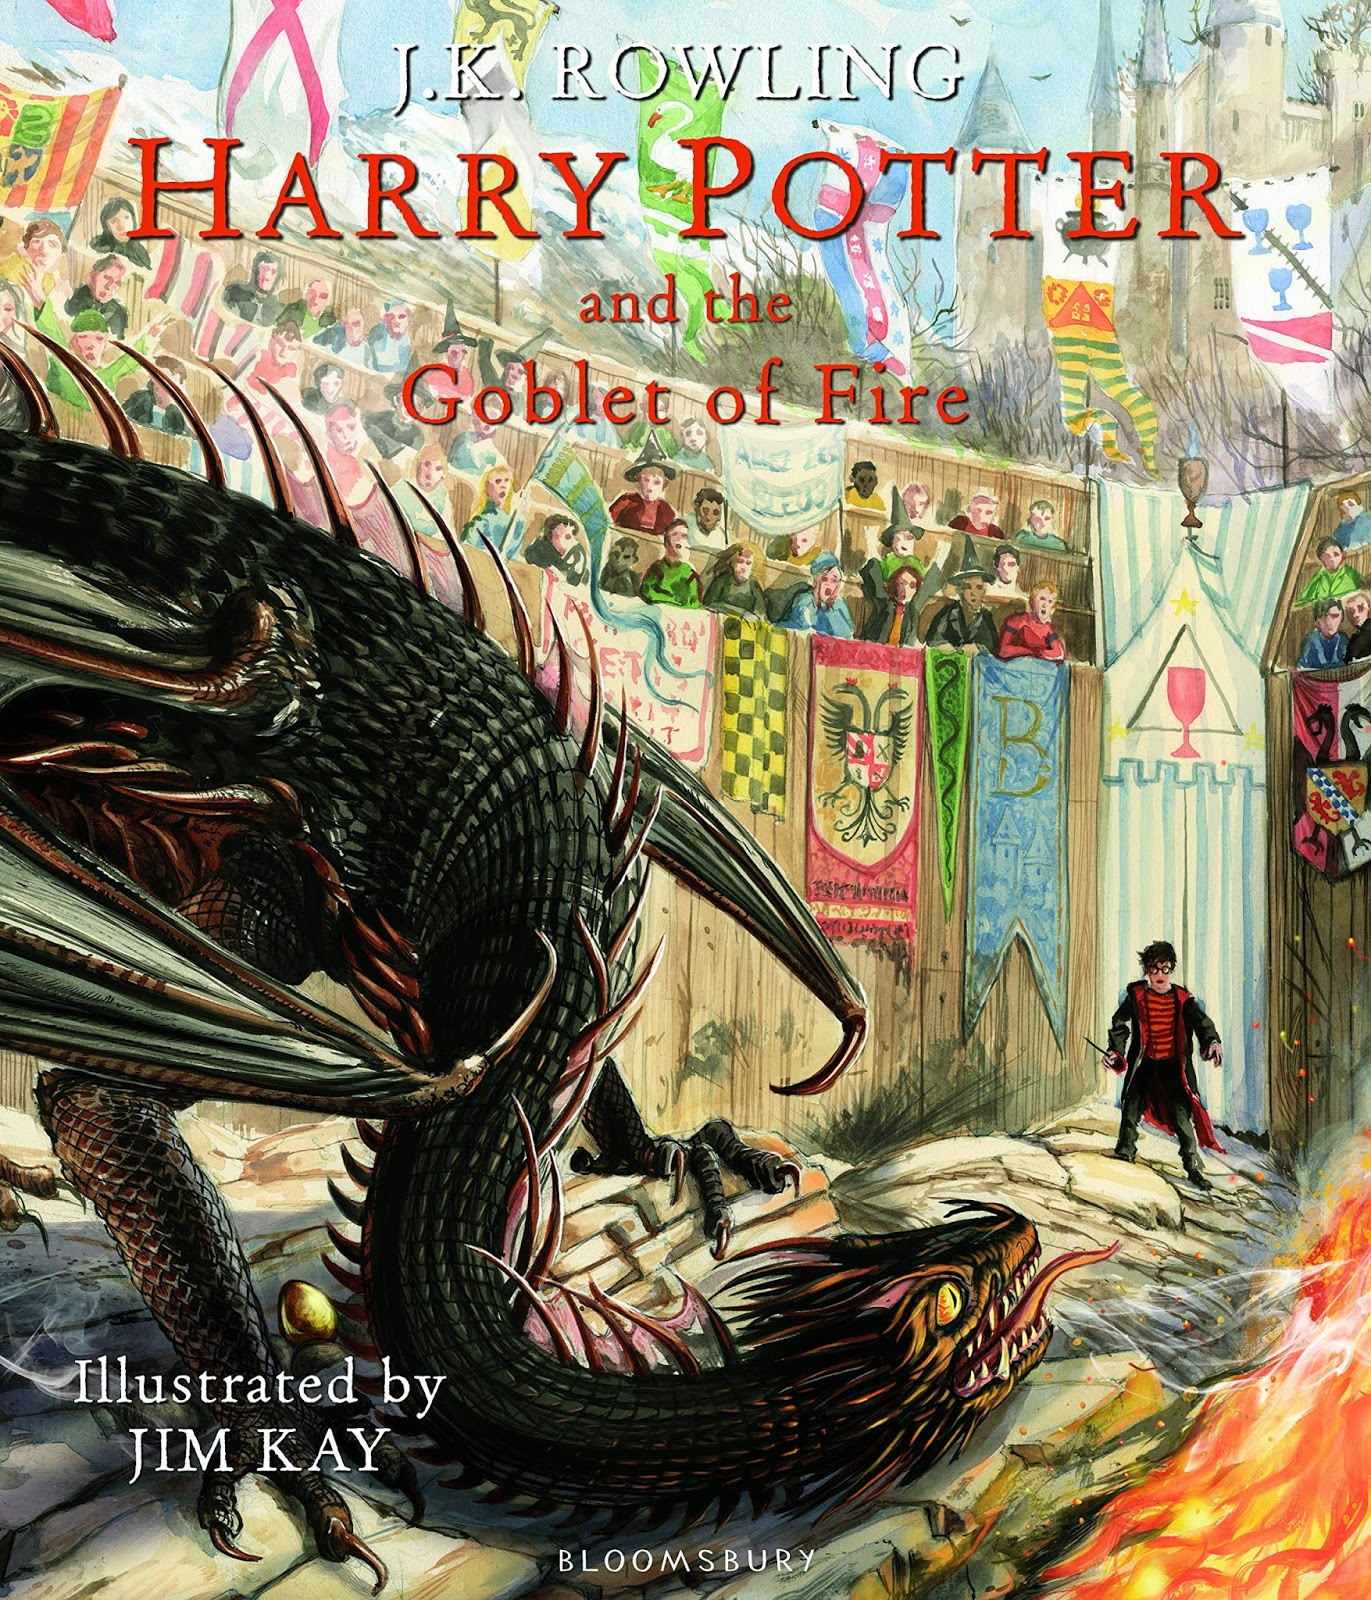 Harry Potter and the Goblet of Fire by J.K. Rowling and Jim Kay